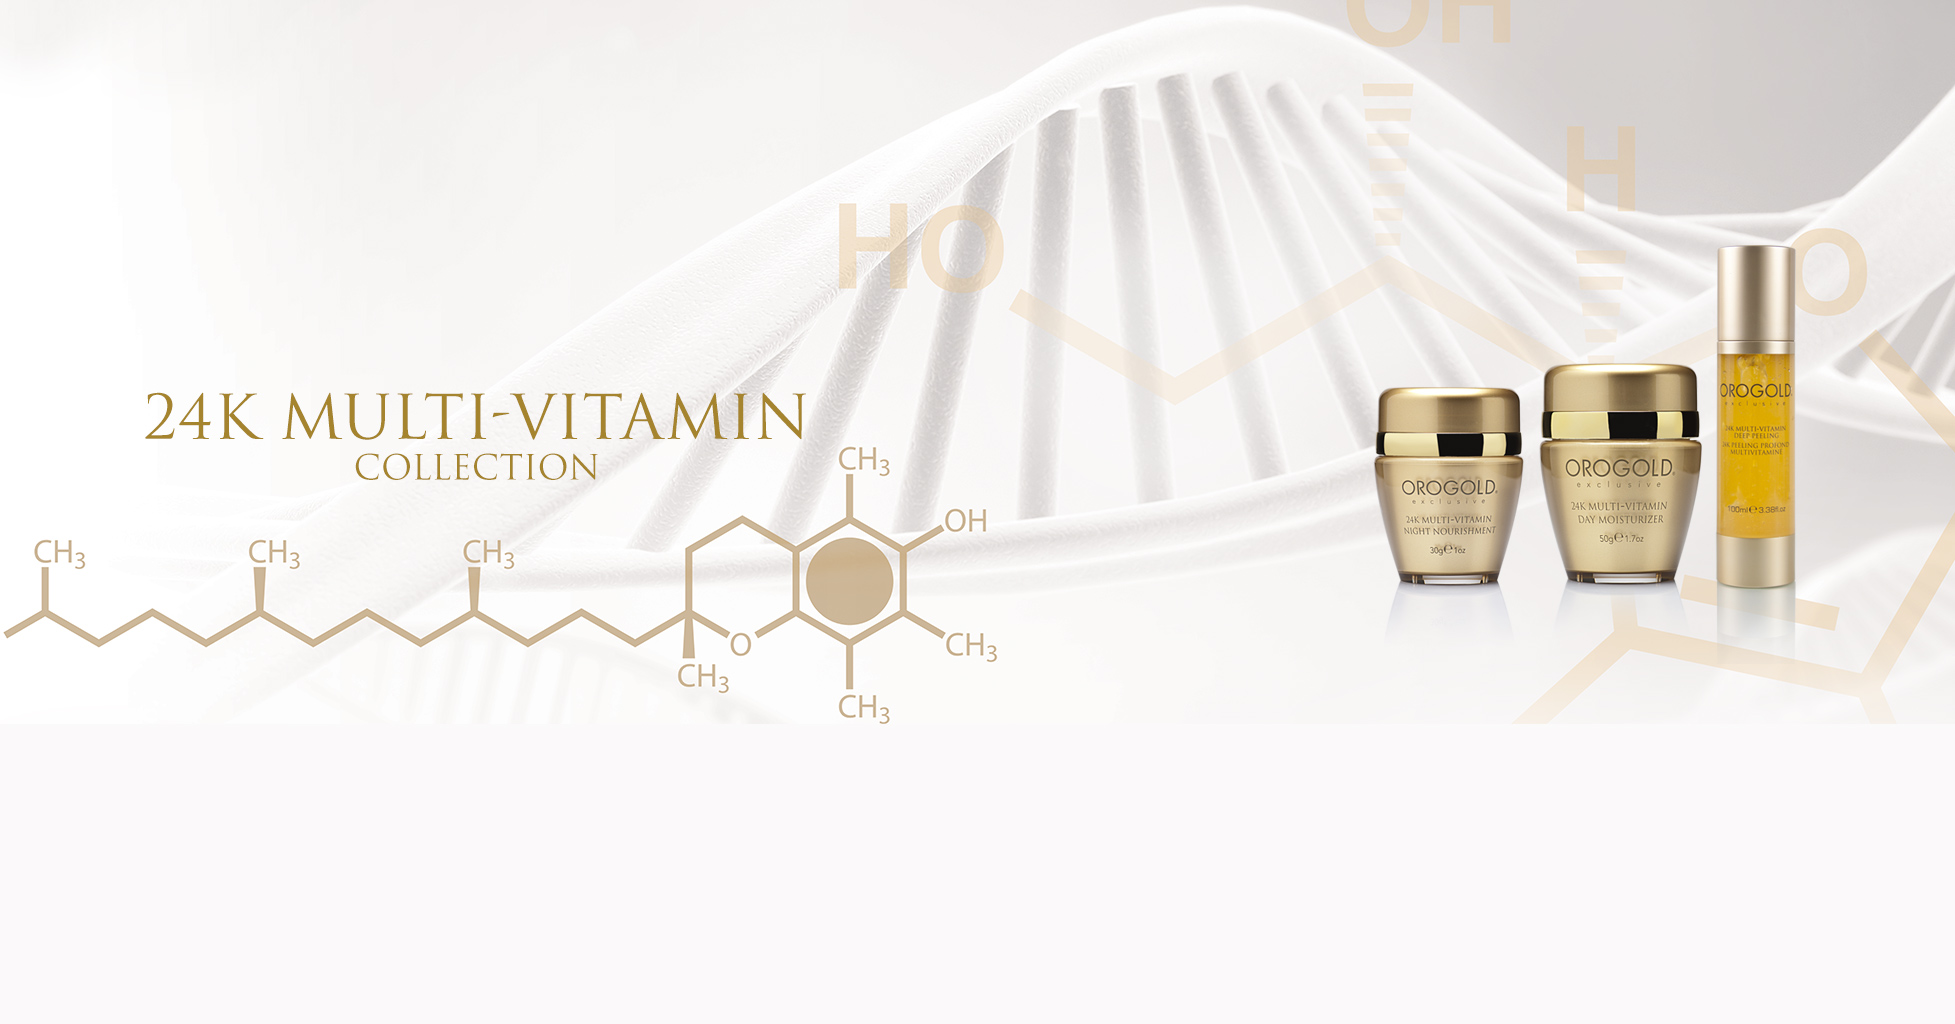 24K Multi-Vitamin Collection